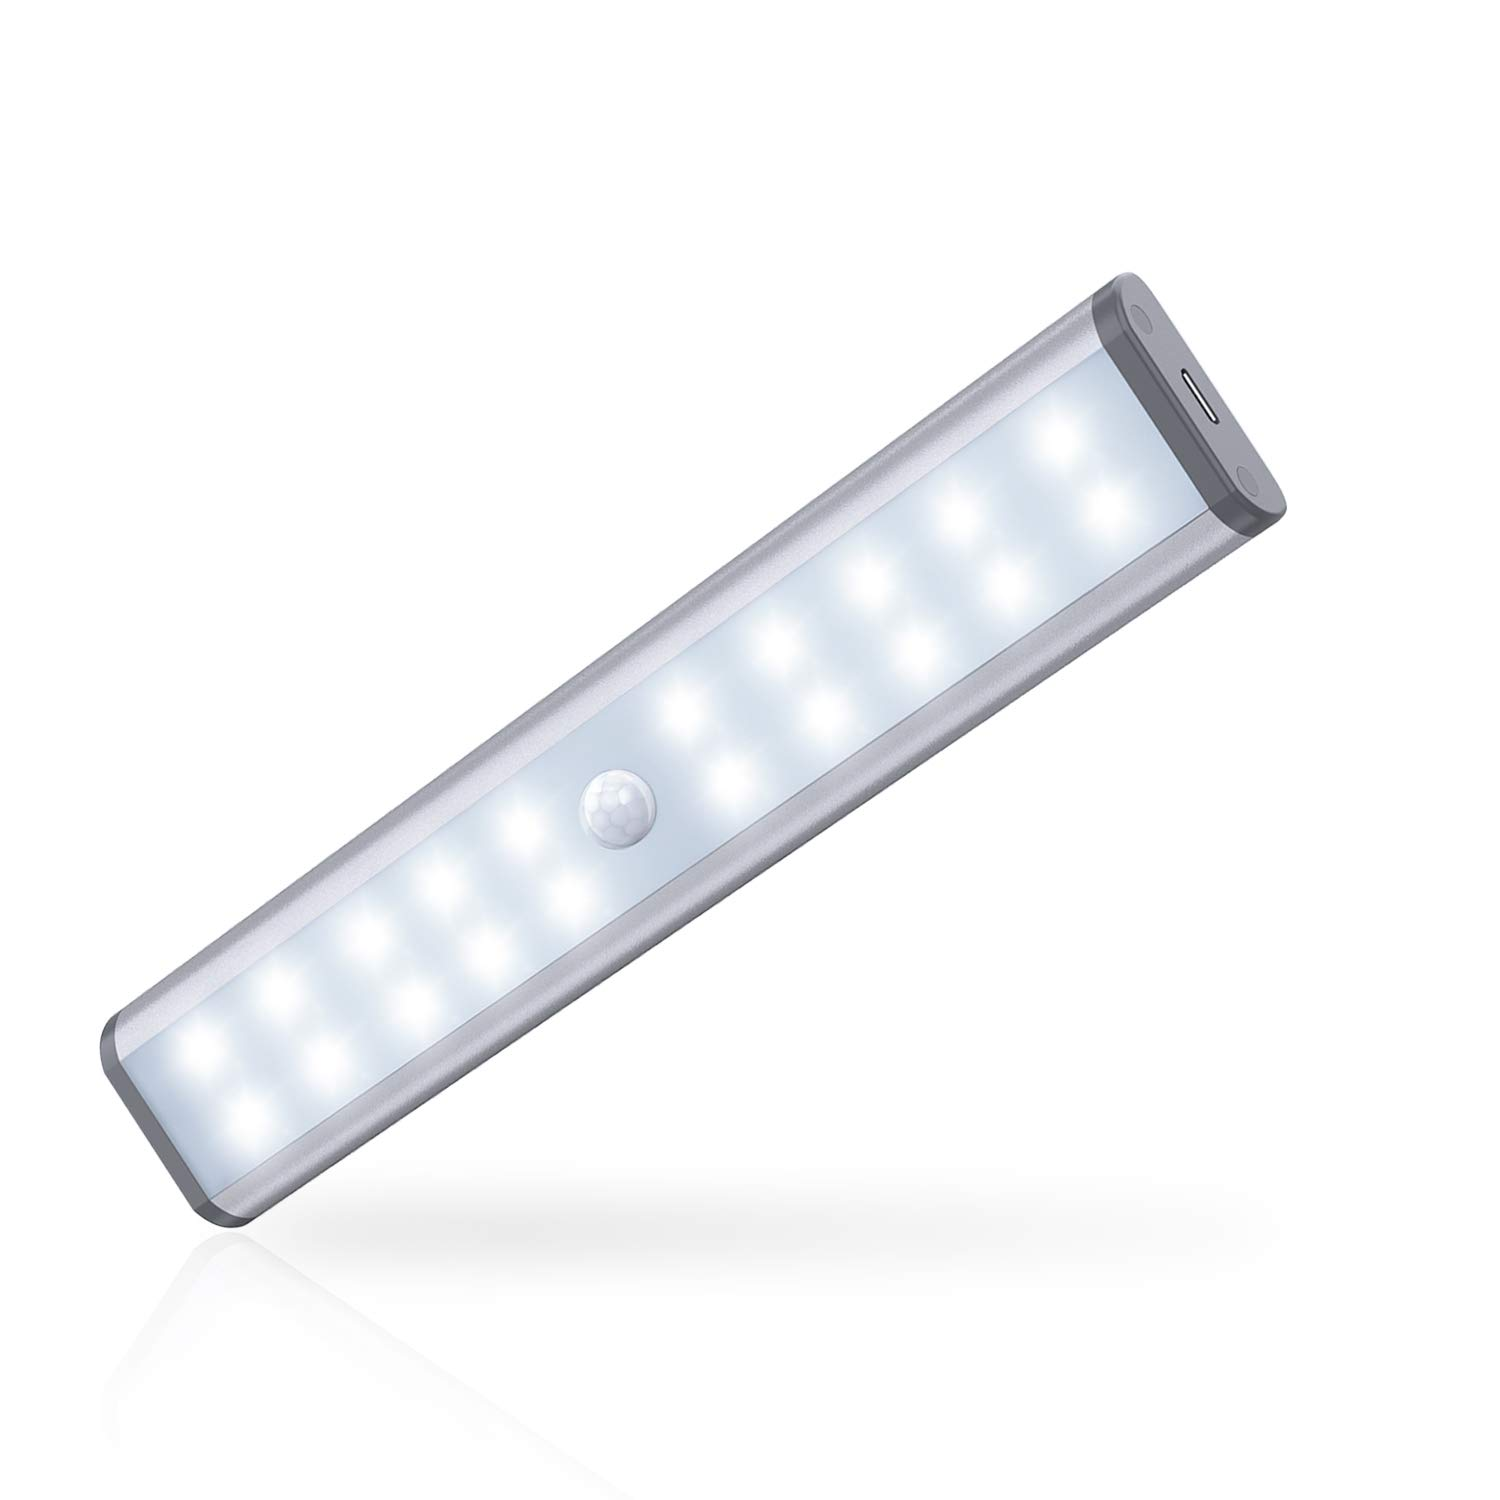 motion sensor closet lights moston 20 led wireless under cabinet lighting with built in rechargeable battery stick on anywhere magnetic night lamp